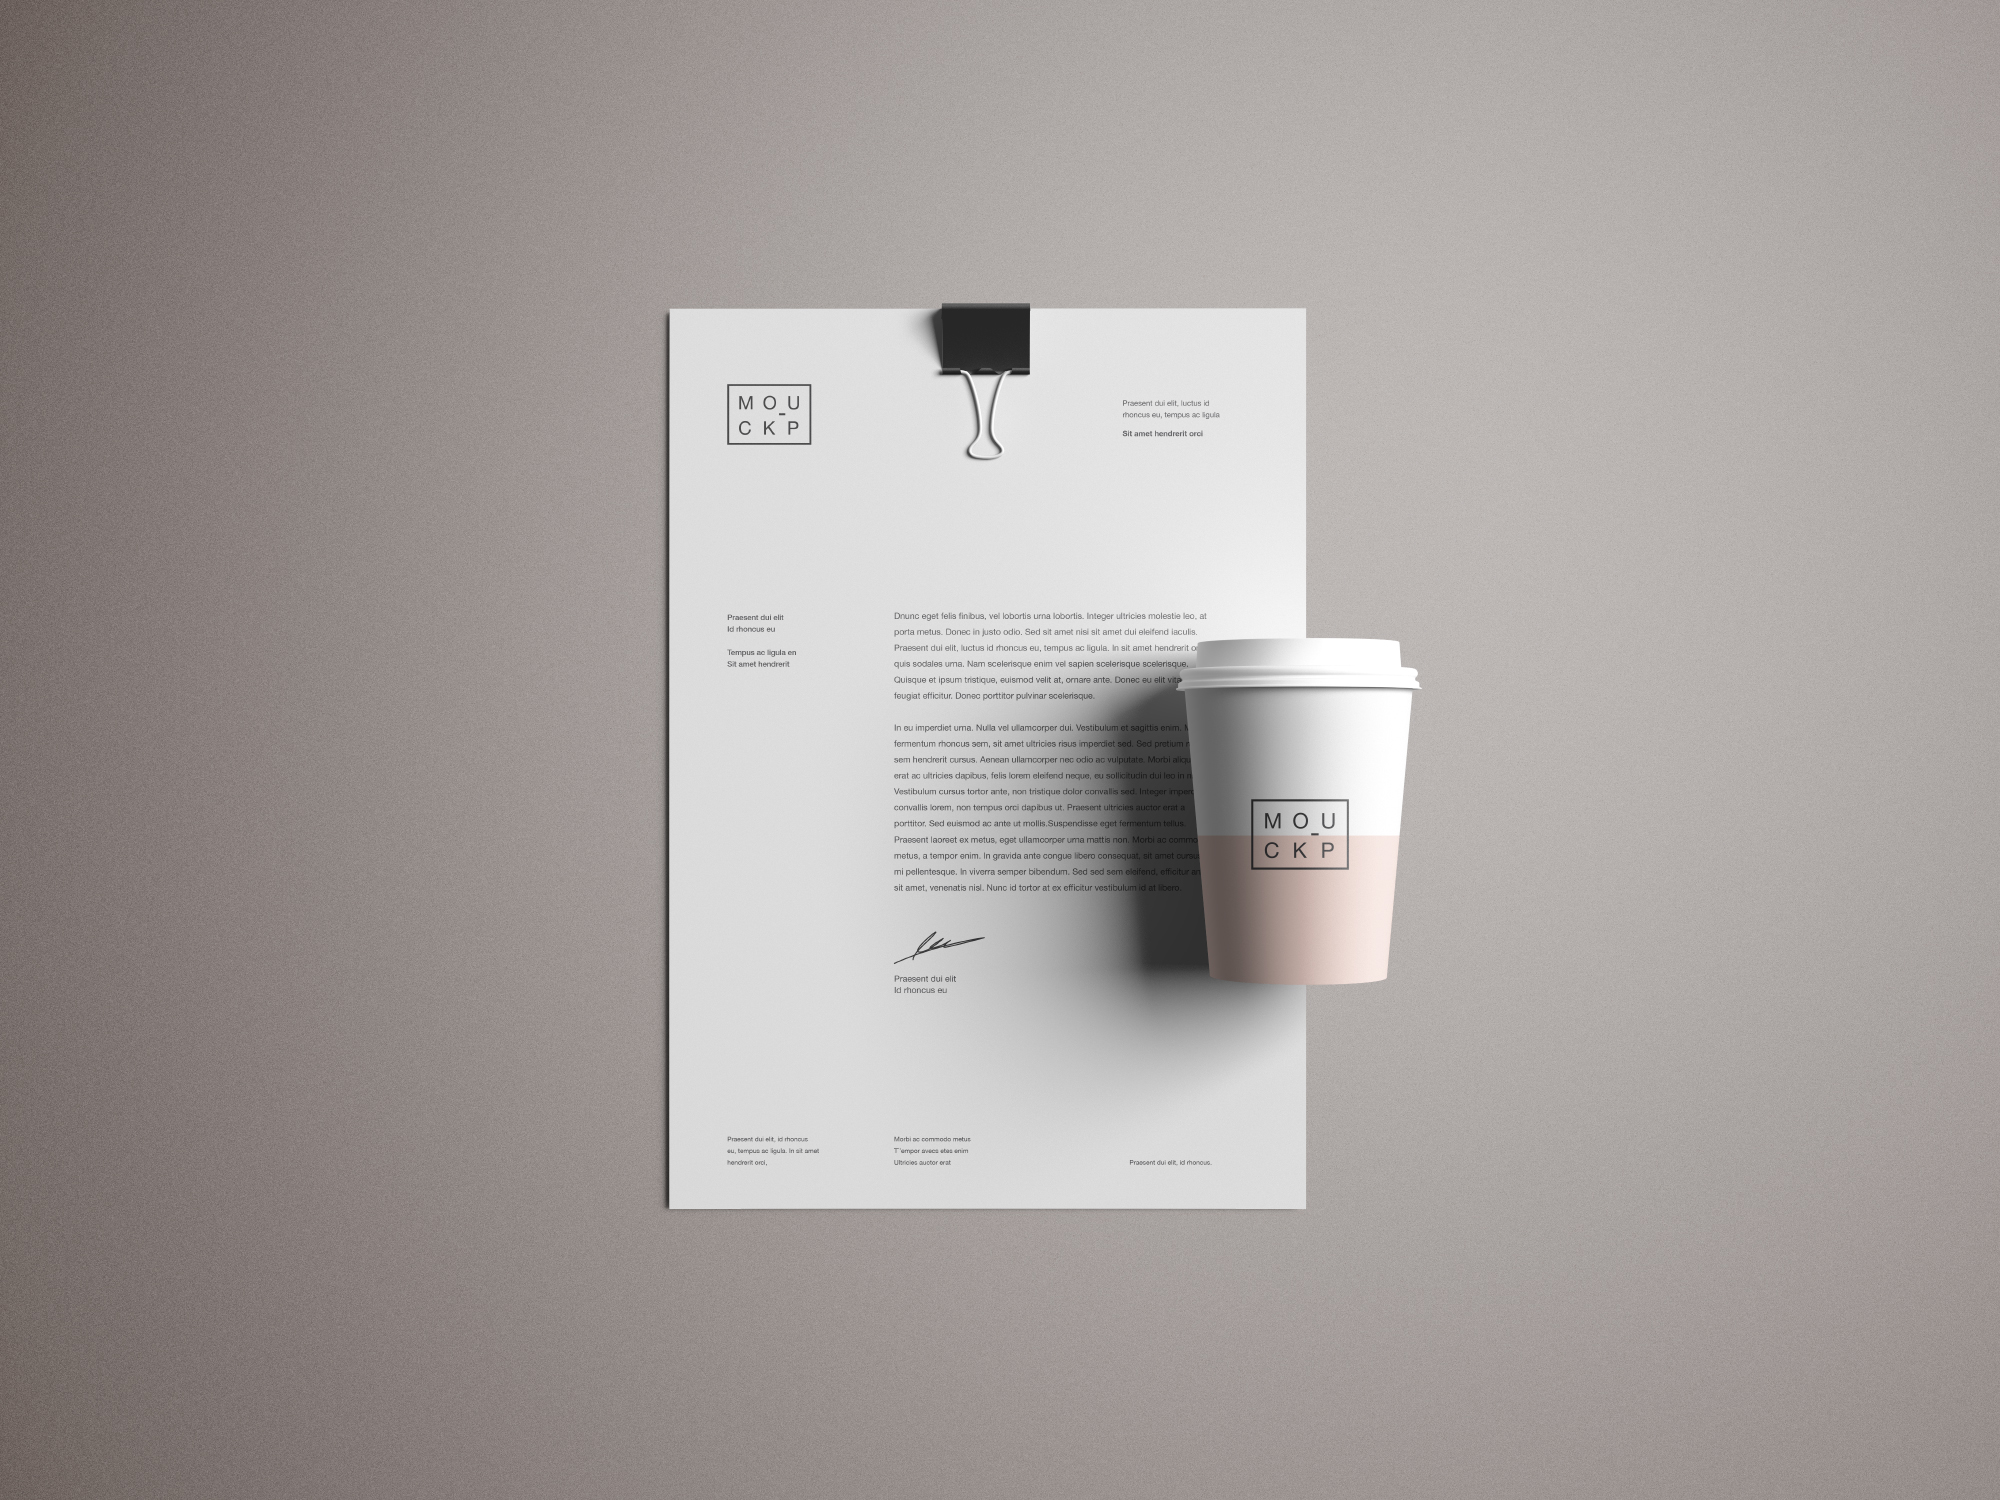 Stationery - Letterhead and Cup Mockup